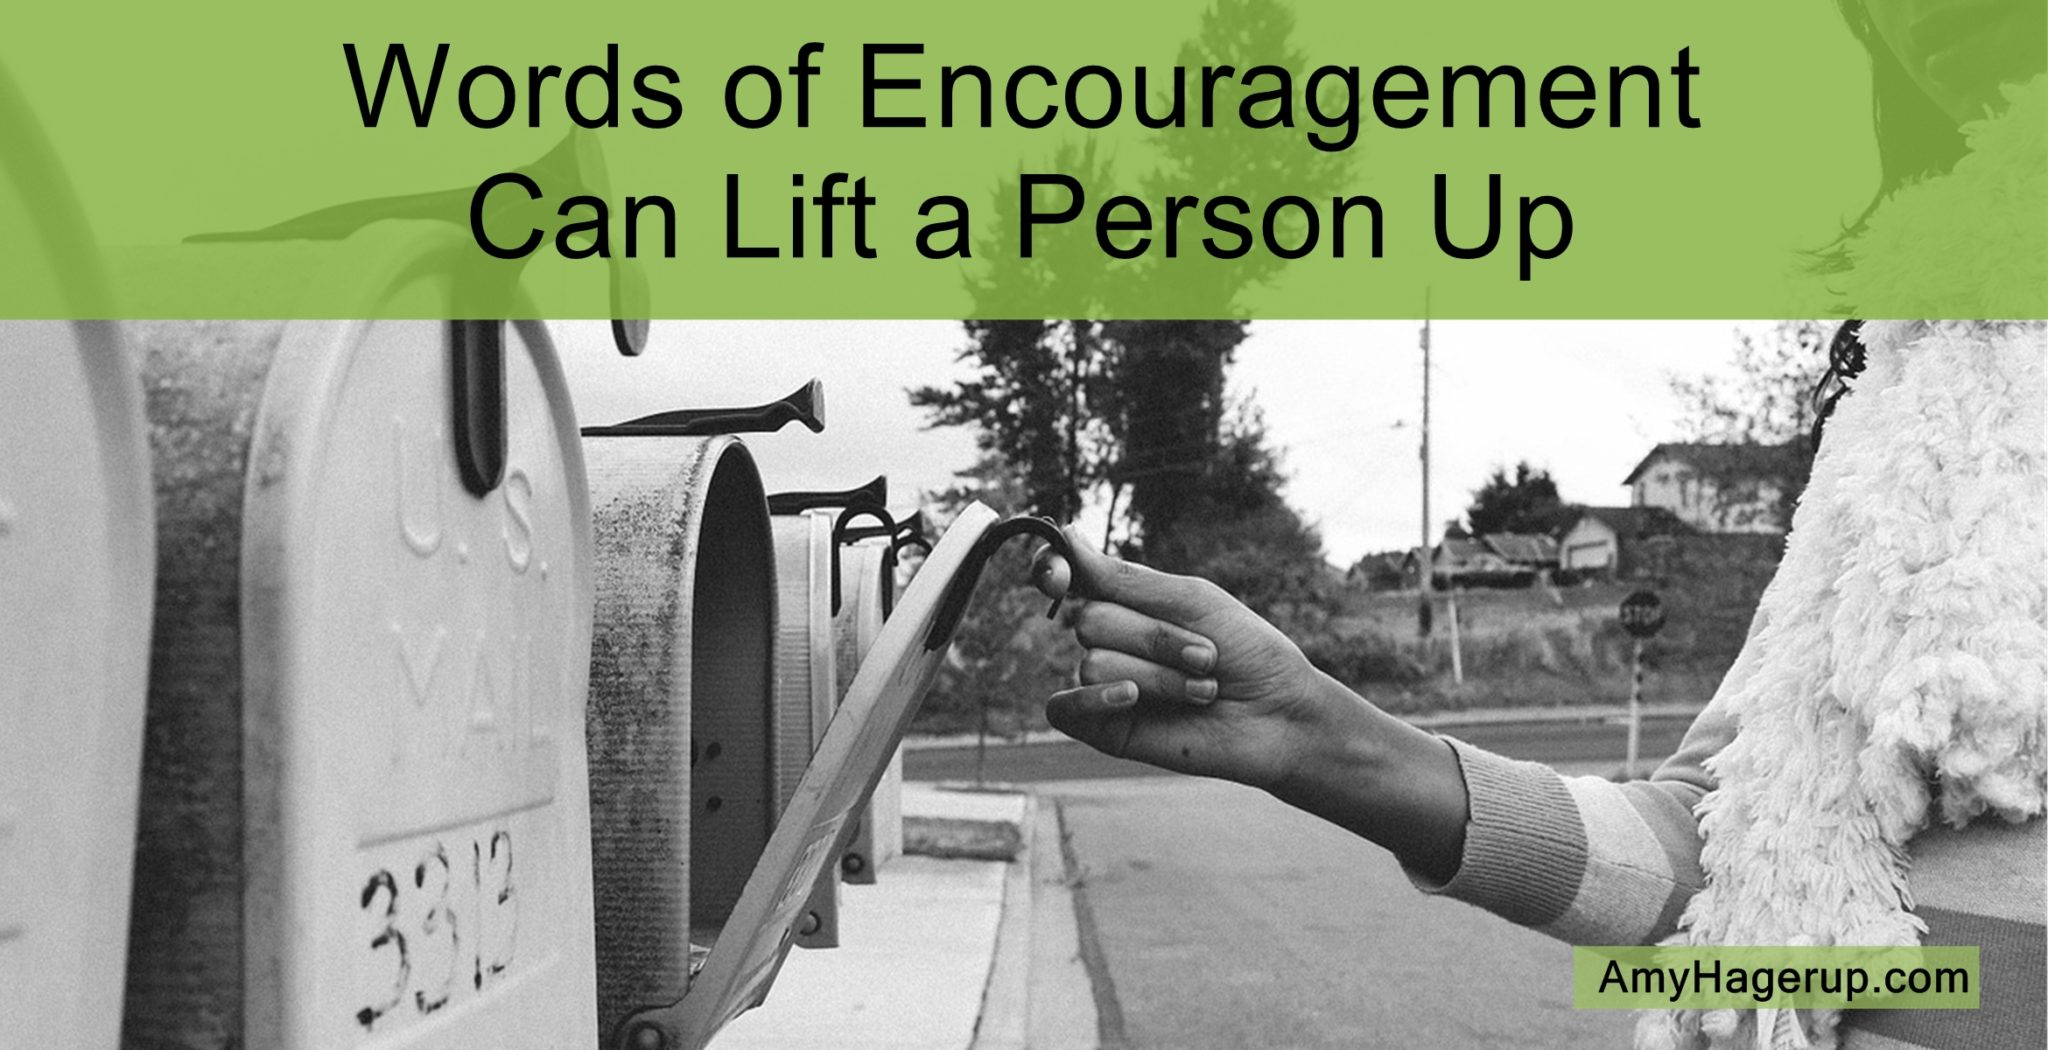 Words of encouragement can lift a person up in a big way.